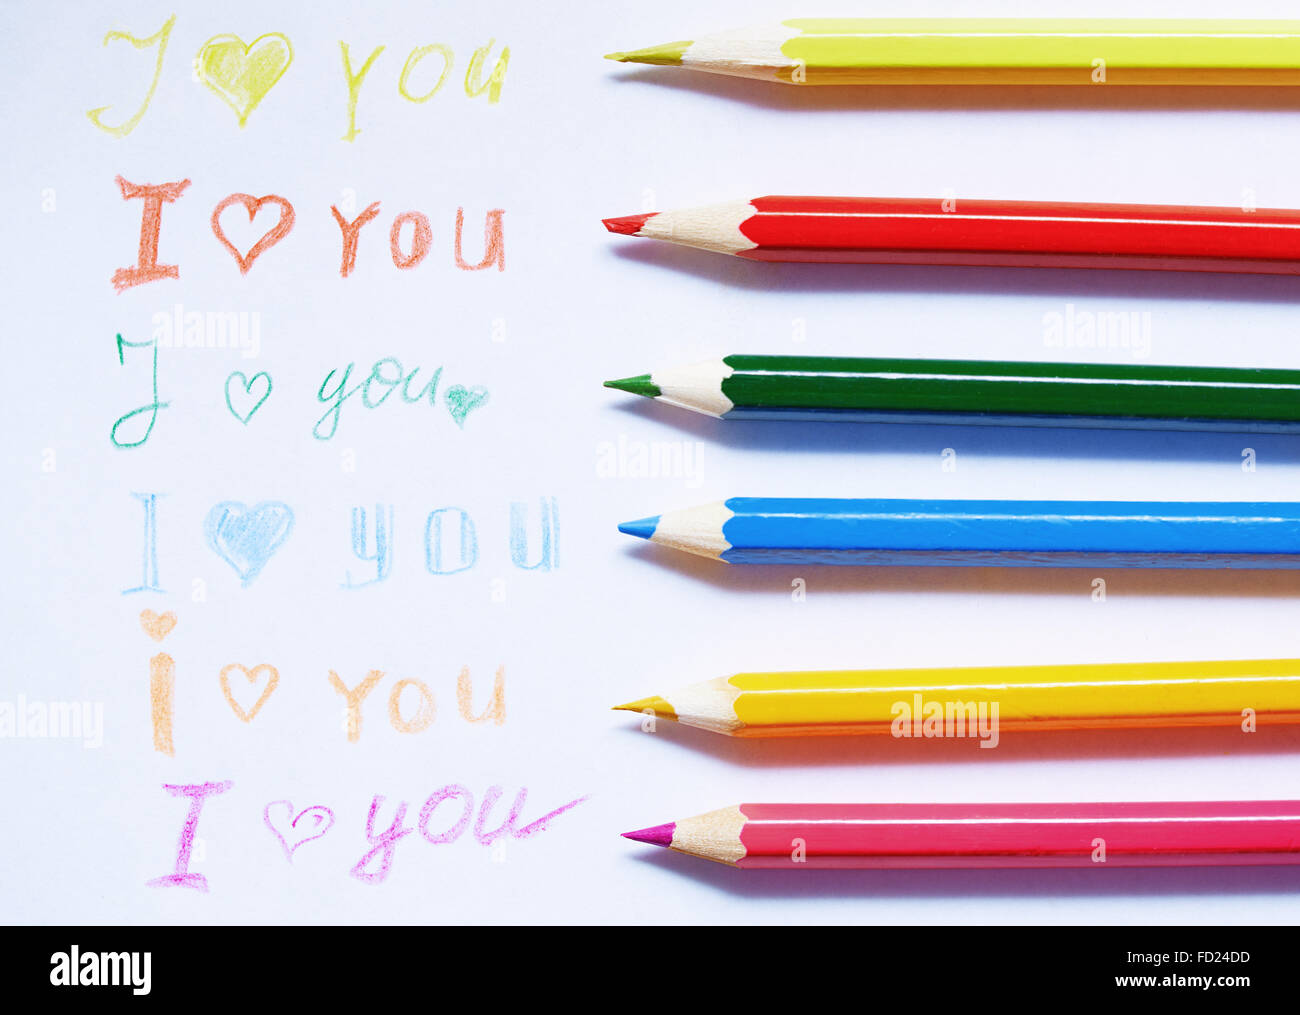 Paper with love you message and colored pencils - Stock Image